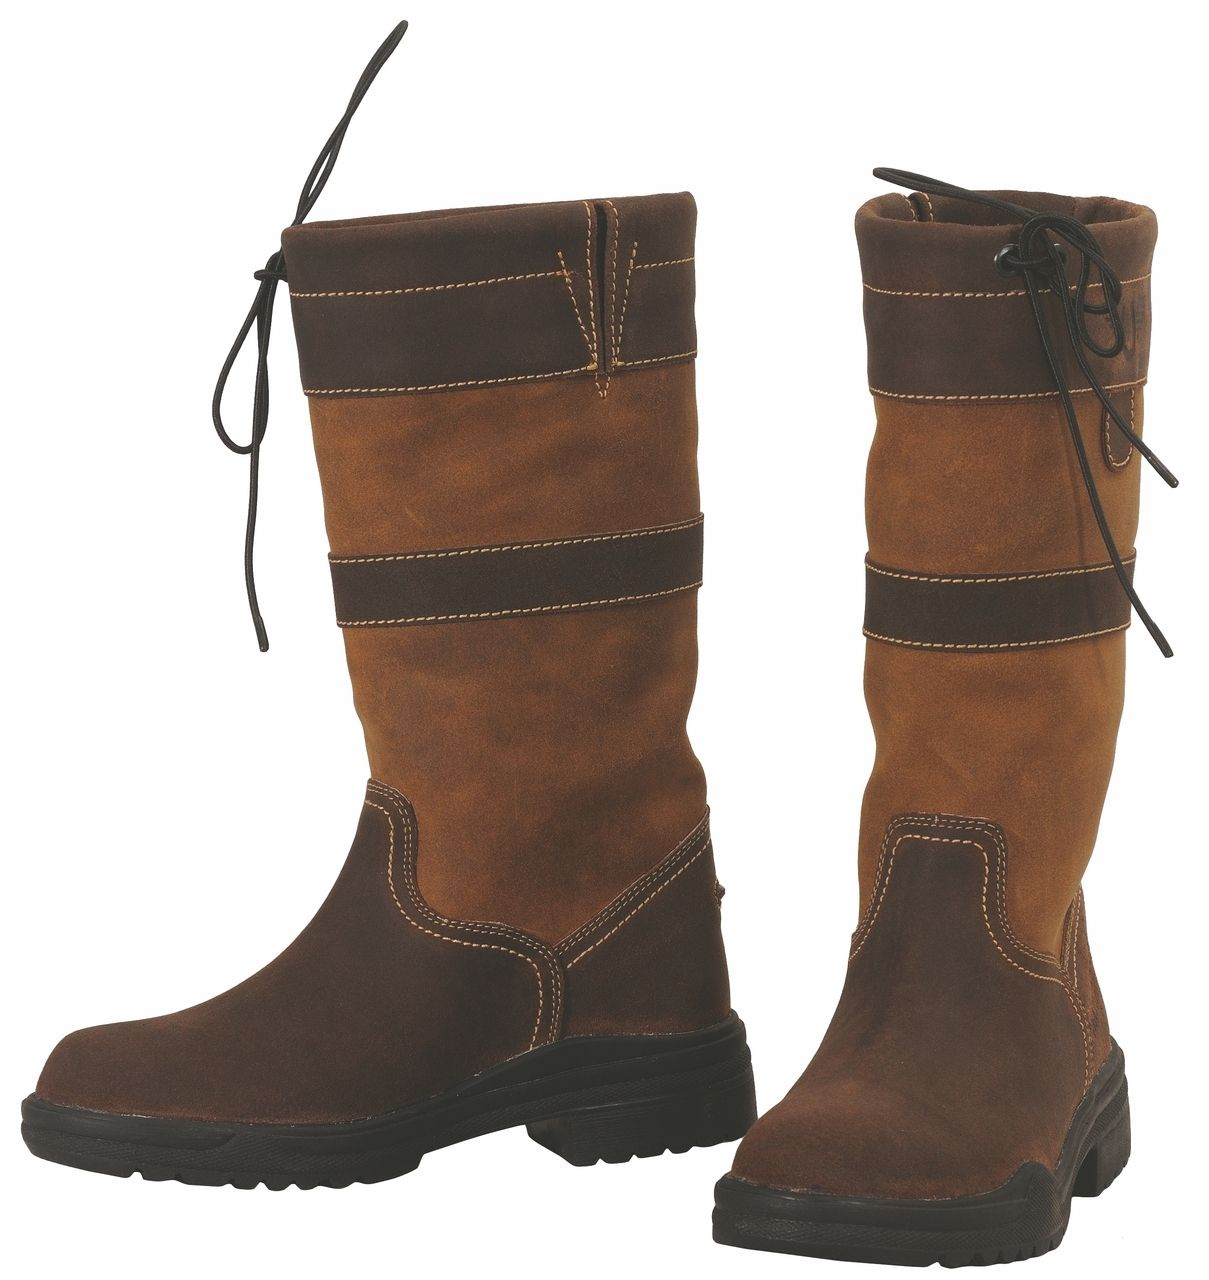 Pin On Casual Boots Shoes For The Equestrian Family